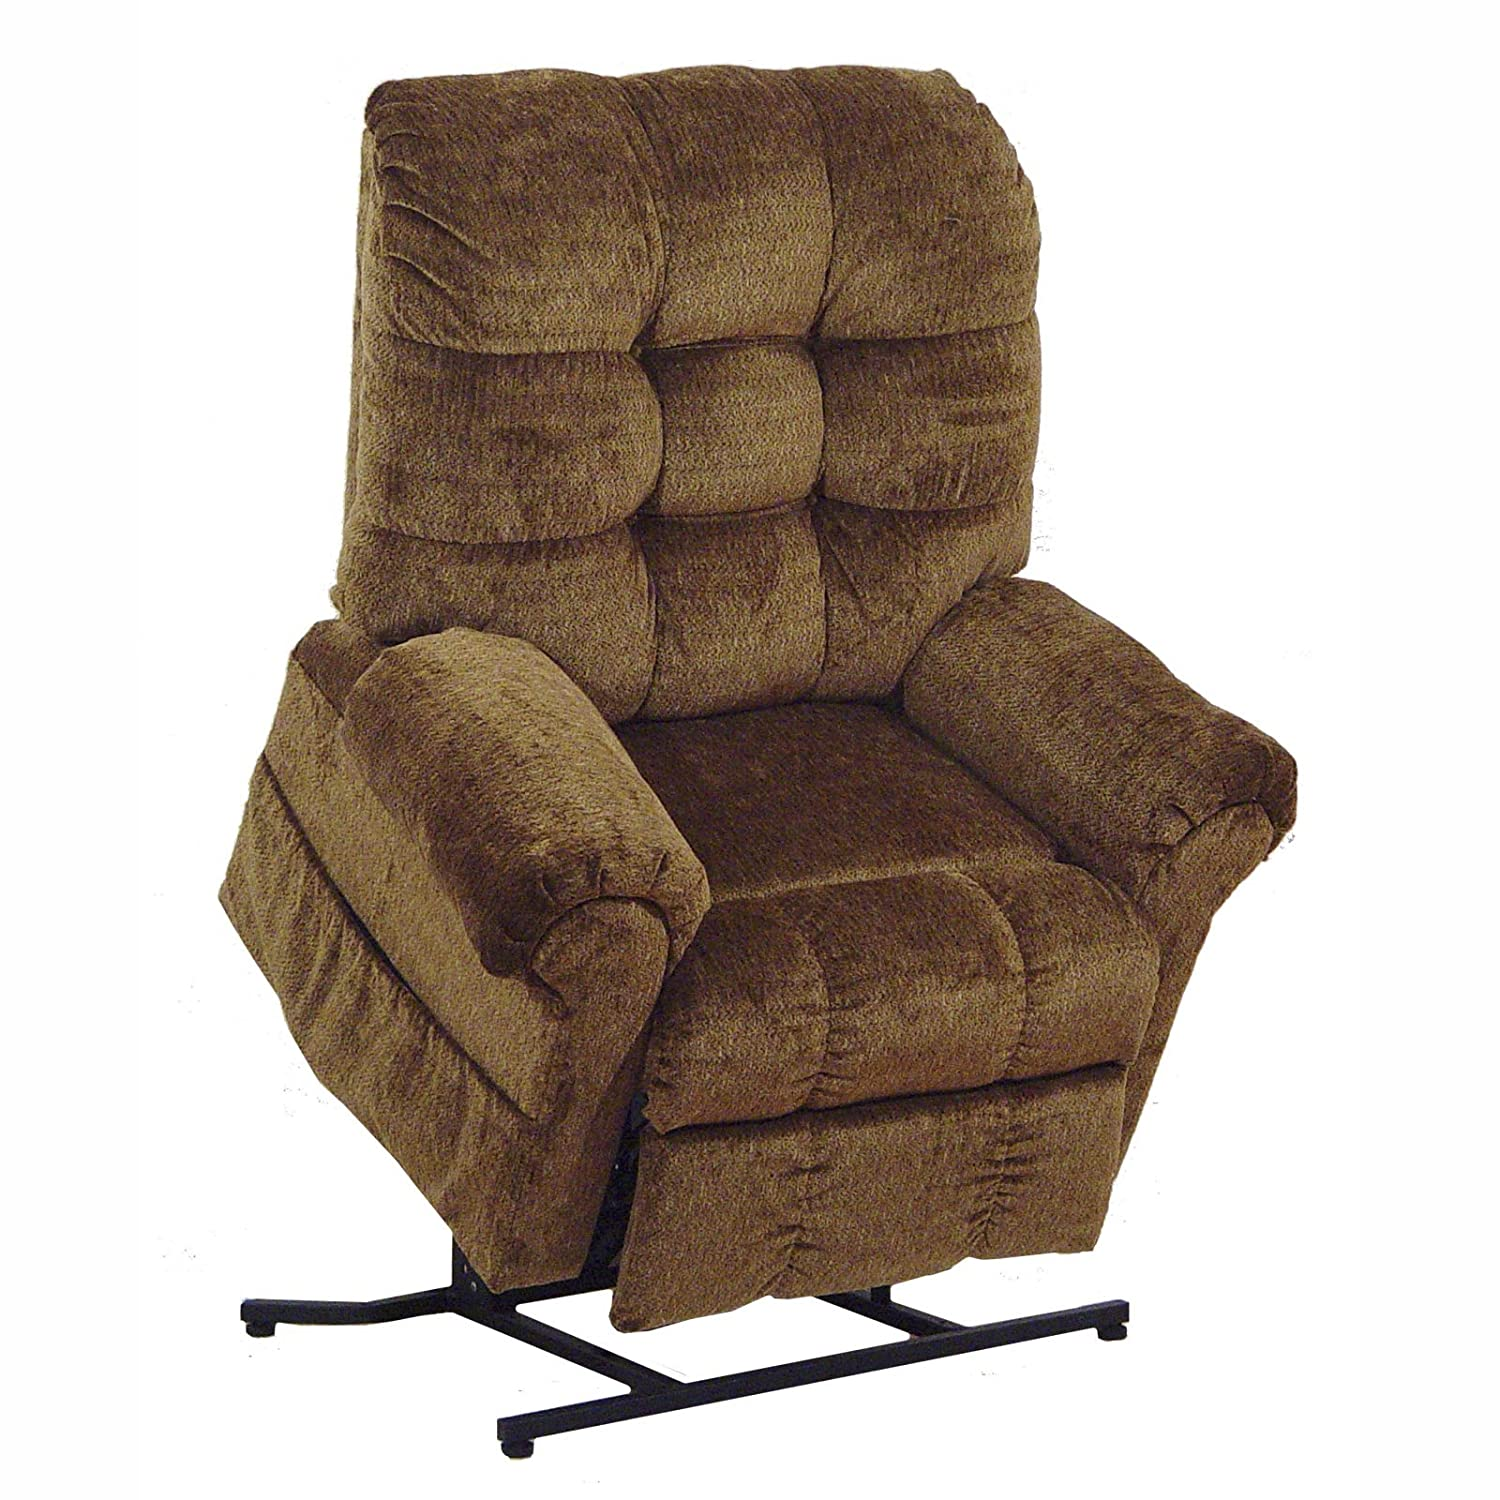 motor chairs elderly the cheap chair covers for folding what 39s best heavy duty recliners big men up to 500